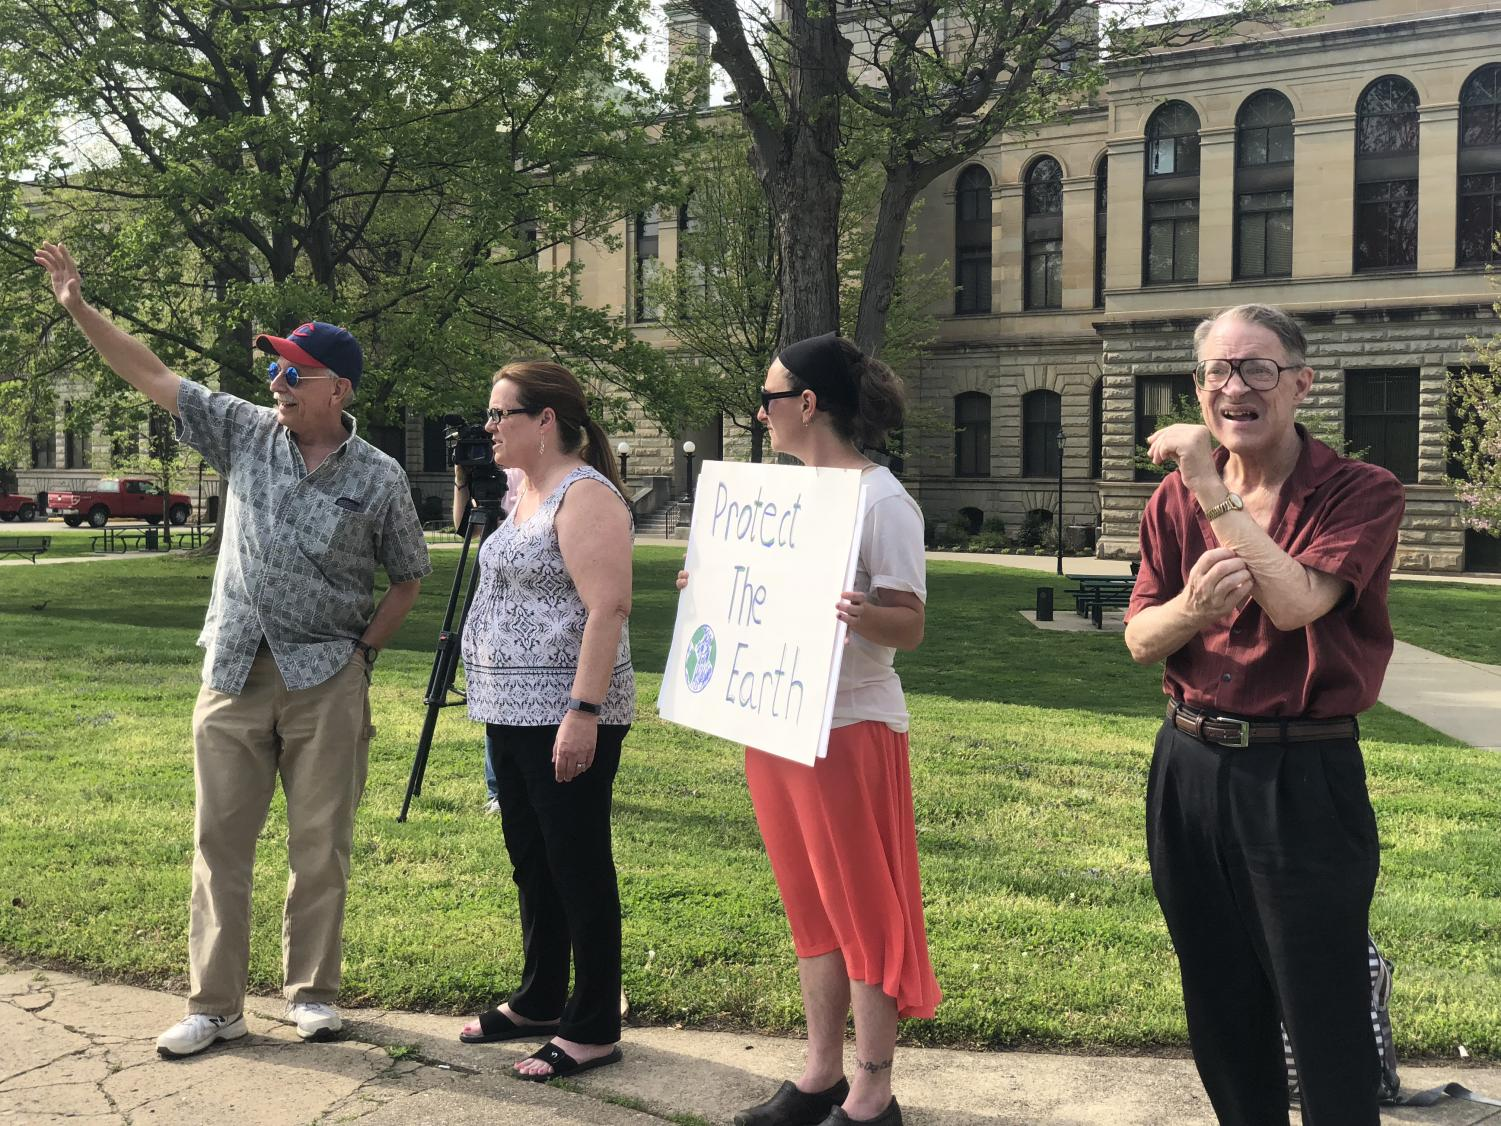 Protestors attempt to engage local passers by (left: Mark Connelly, left-center: Barbara Garnett, right: Charles Britz).